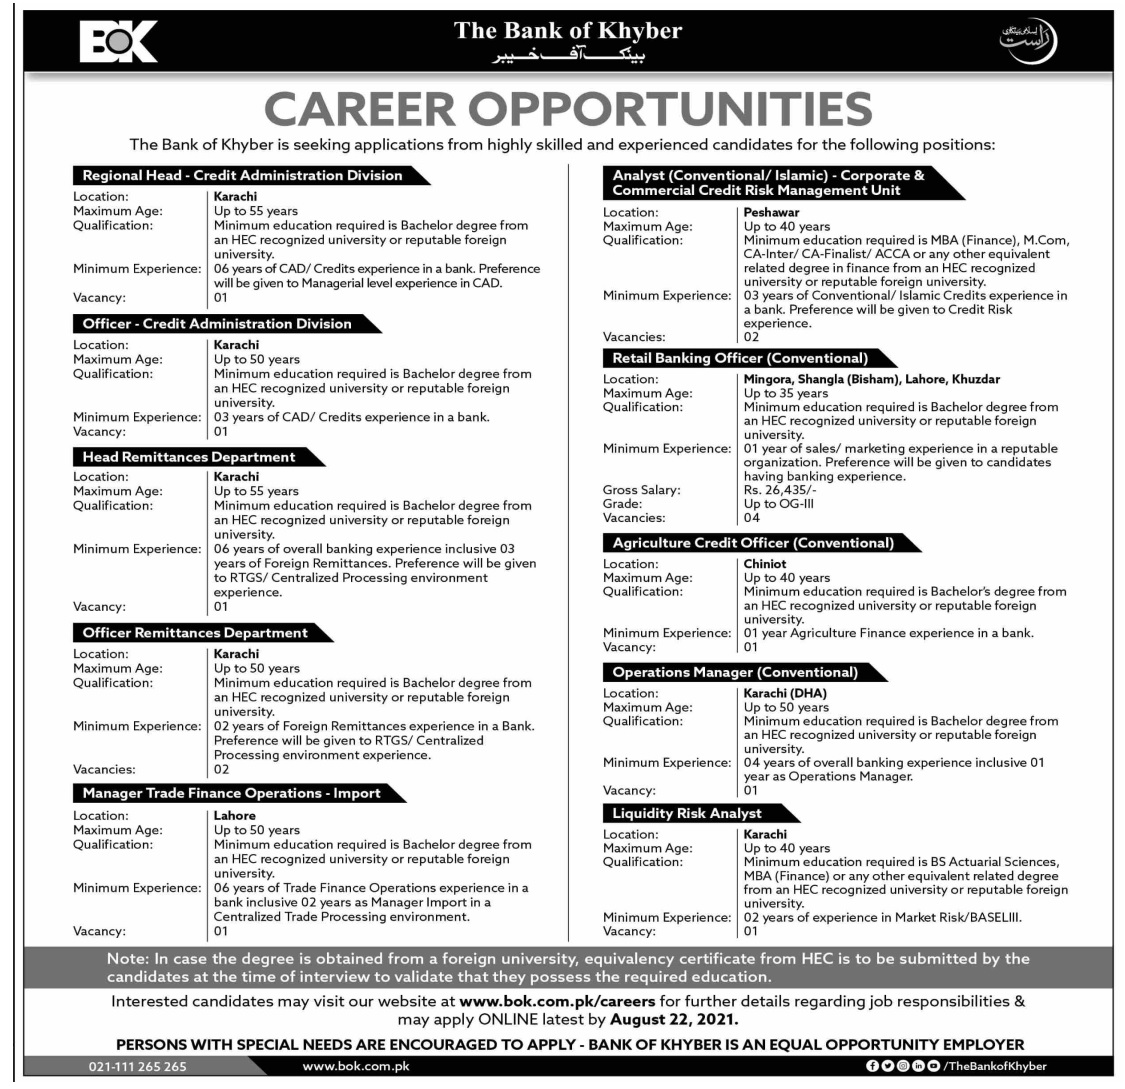 The Bank of Khyber BoK Jobs August 2021